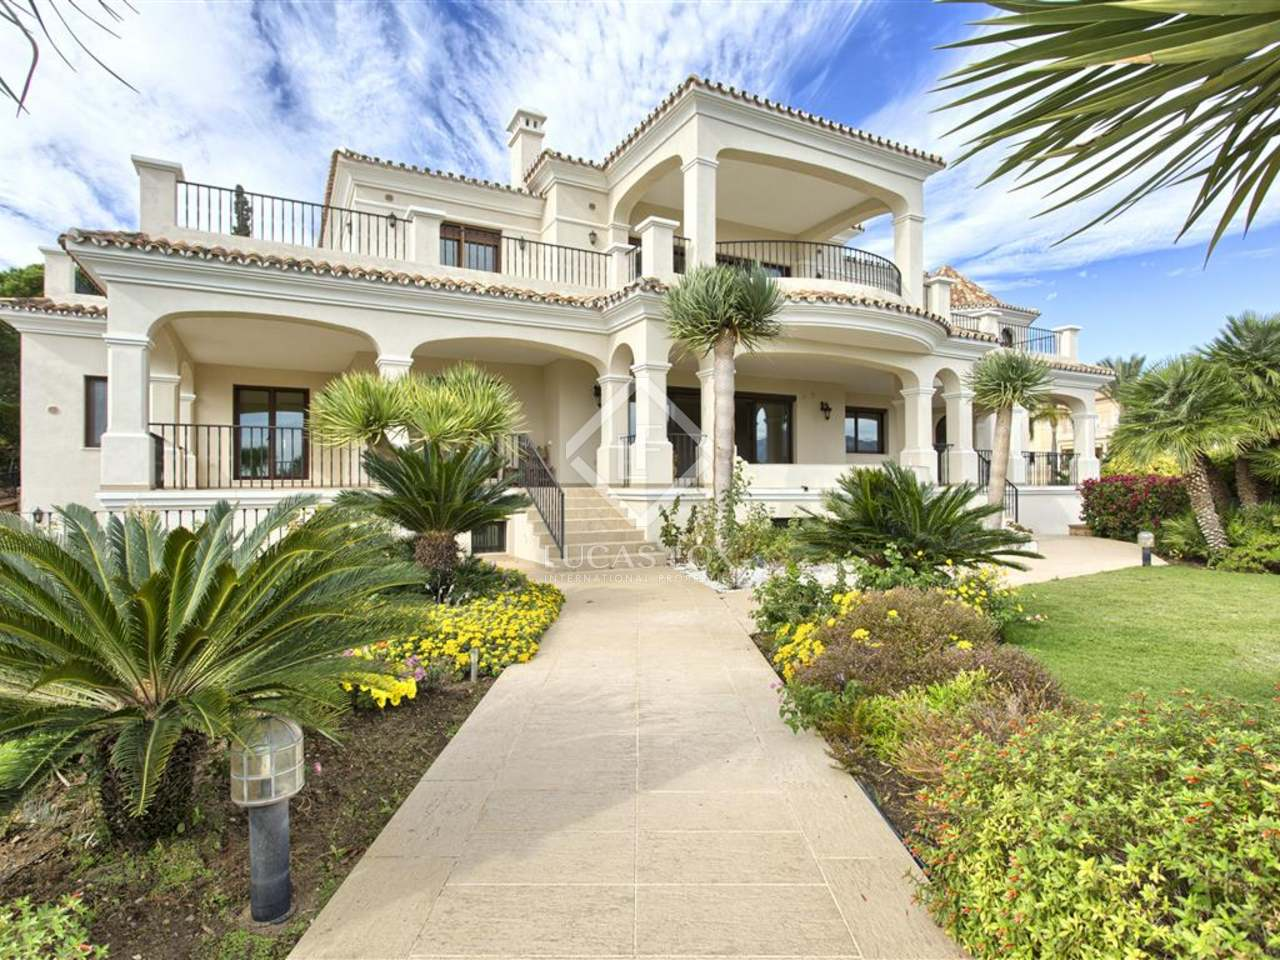 778m Villa With Garden And Pool For Sale In Benahav S